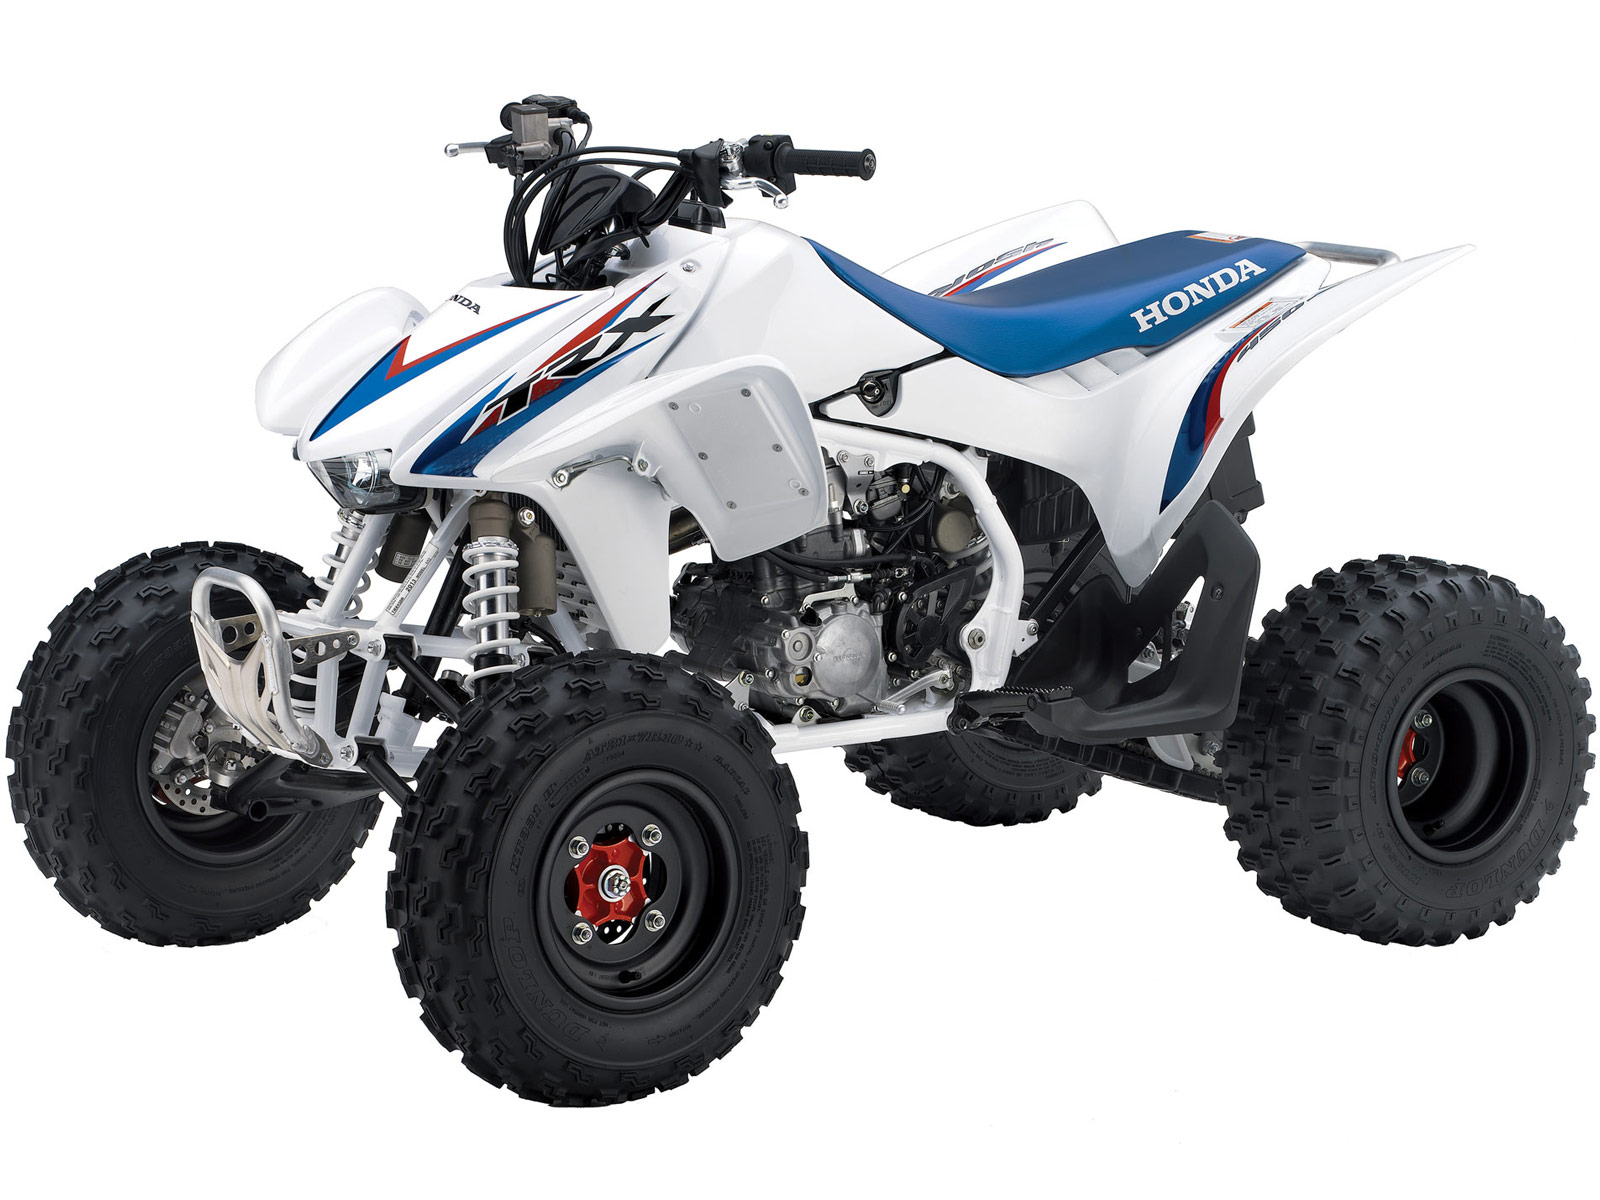 2013 Honda TRX450R ATV Pictures   Insurance information